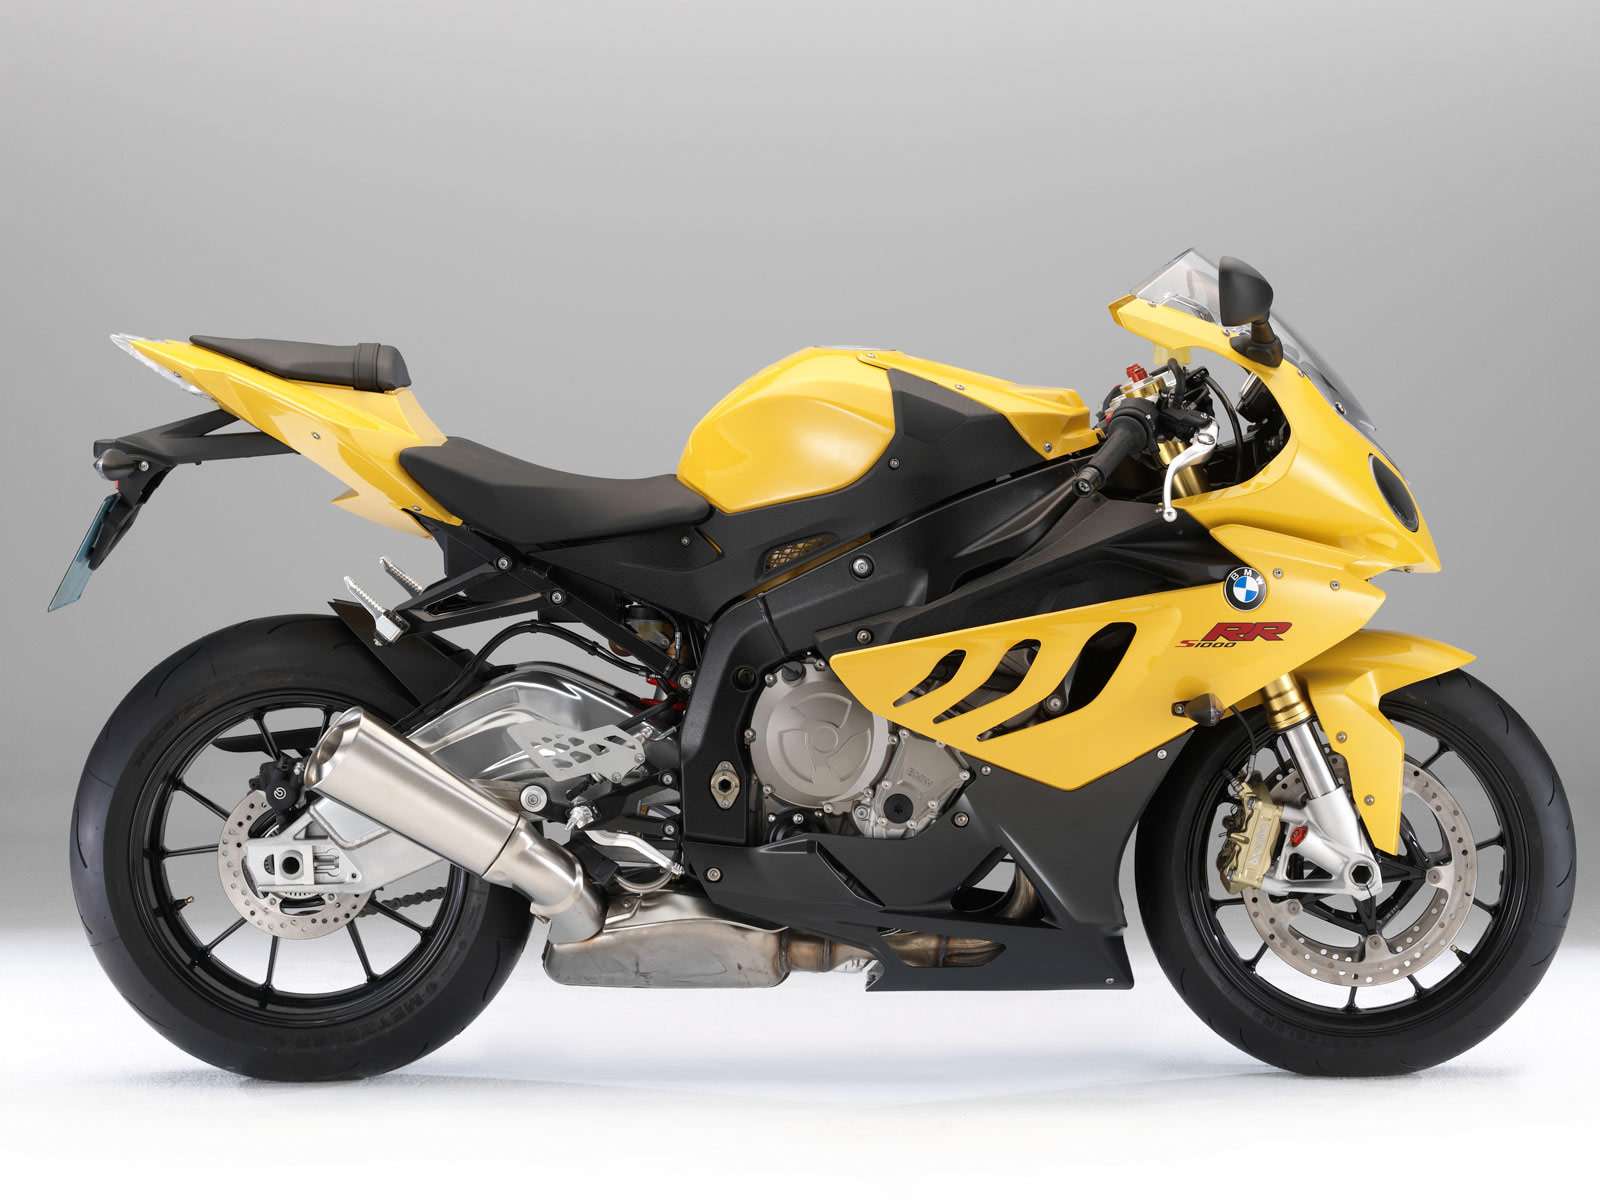 2010 bmw s1000rr motorcycle accident lawyers info. Black Bedroom Furniture Sets. Home Design Ideas